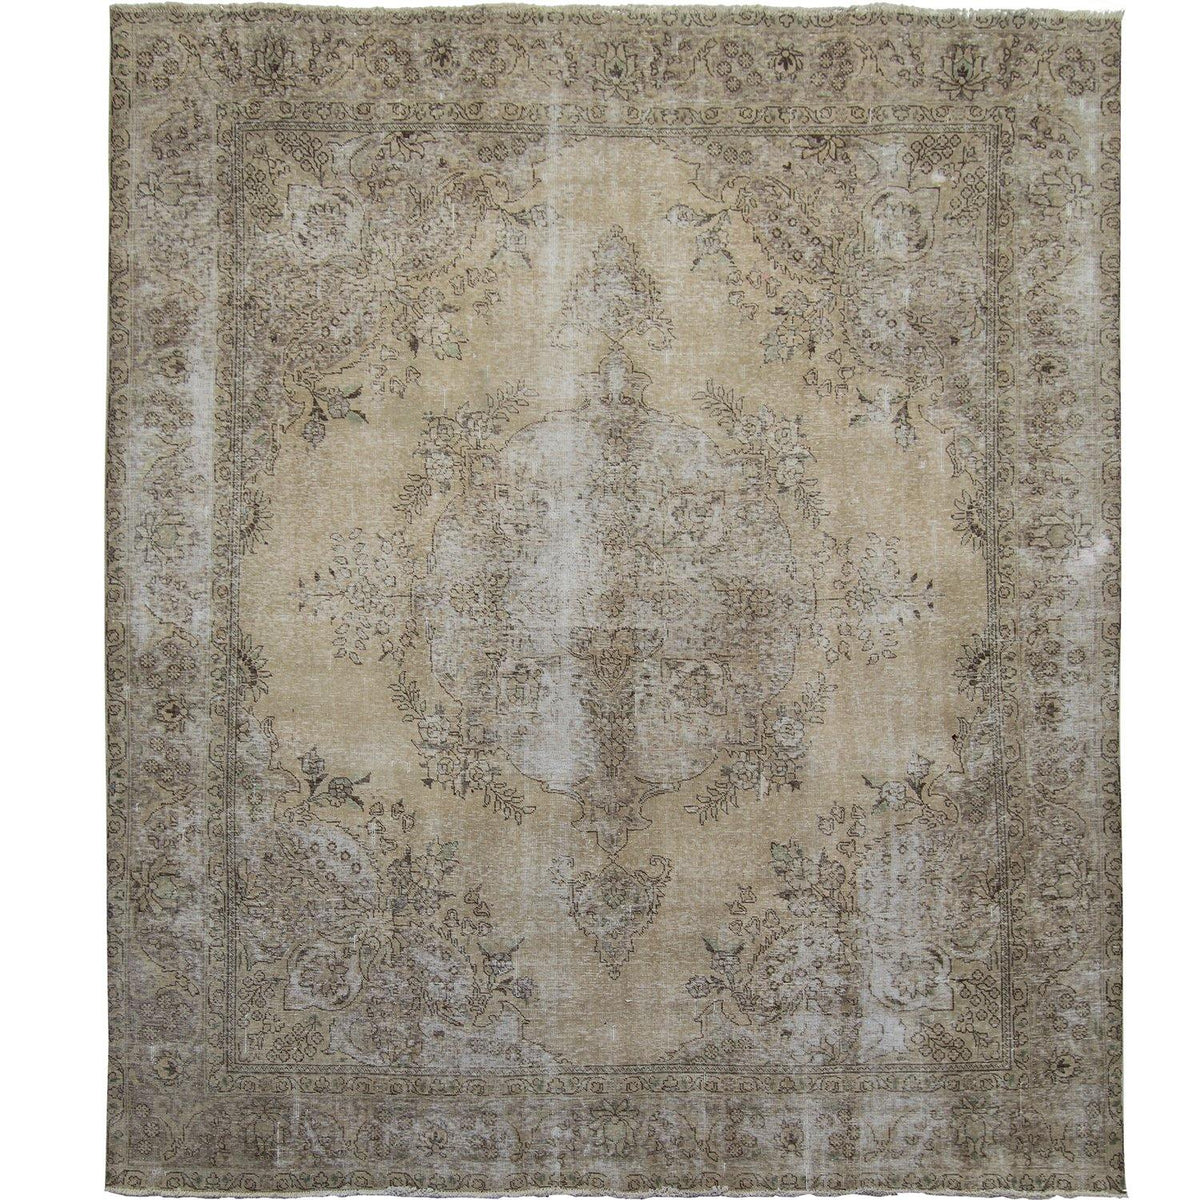 PERSIAN VINTAGE WOOL LARGE RUG 287CM X 346 Persian-Rug | House-of-Haghi | NewMarket | Auckland | NZ | Handmade Persian Rugs | Hand Knotted Persian Rugs